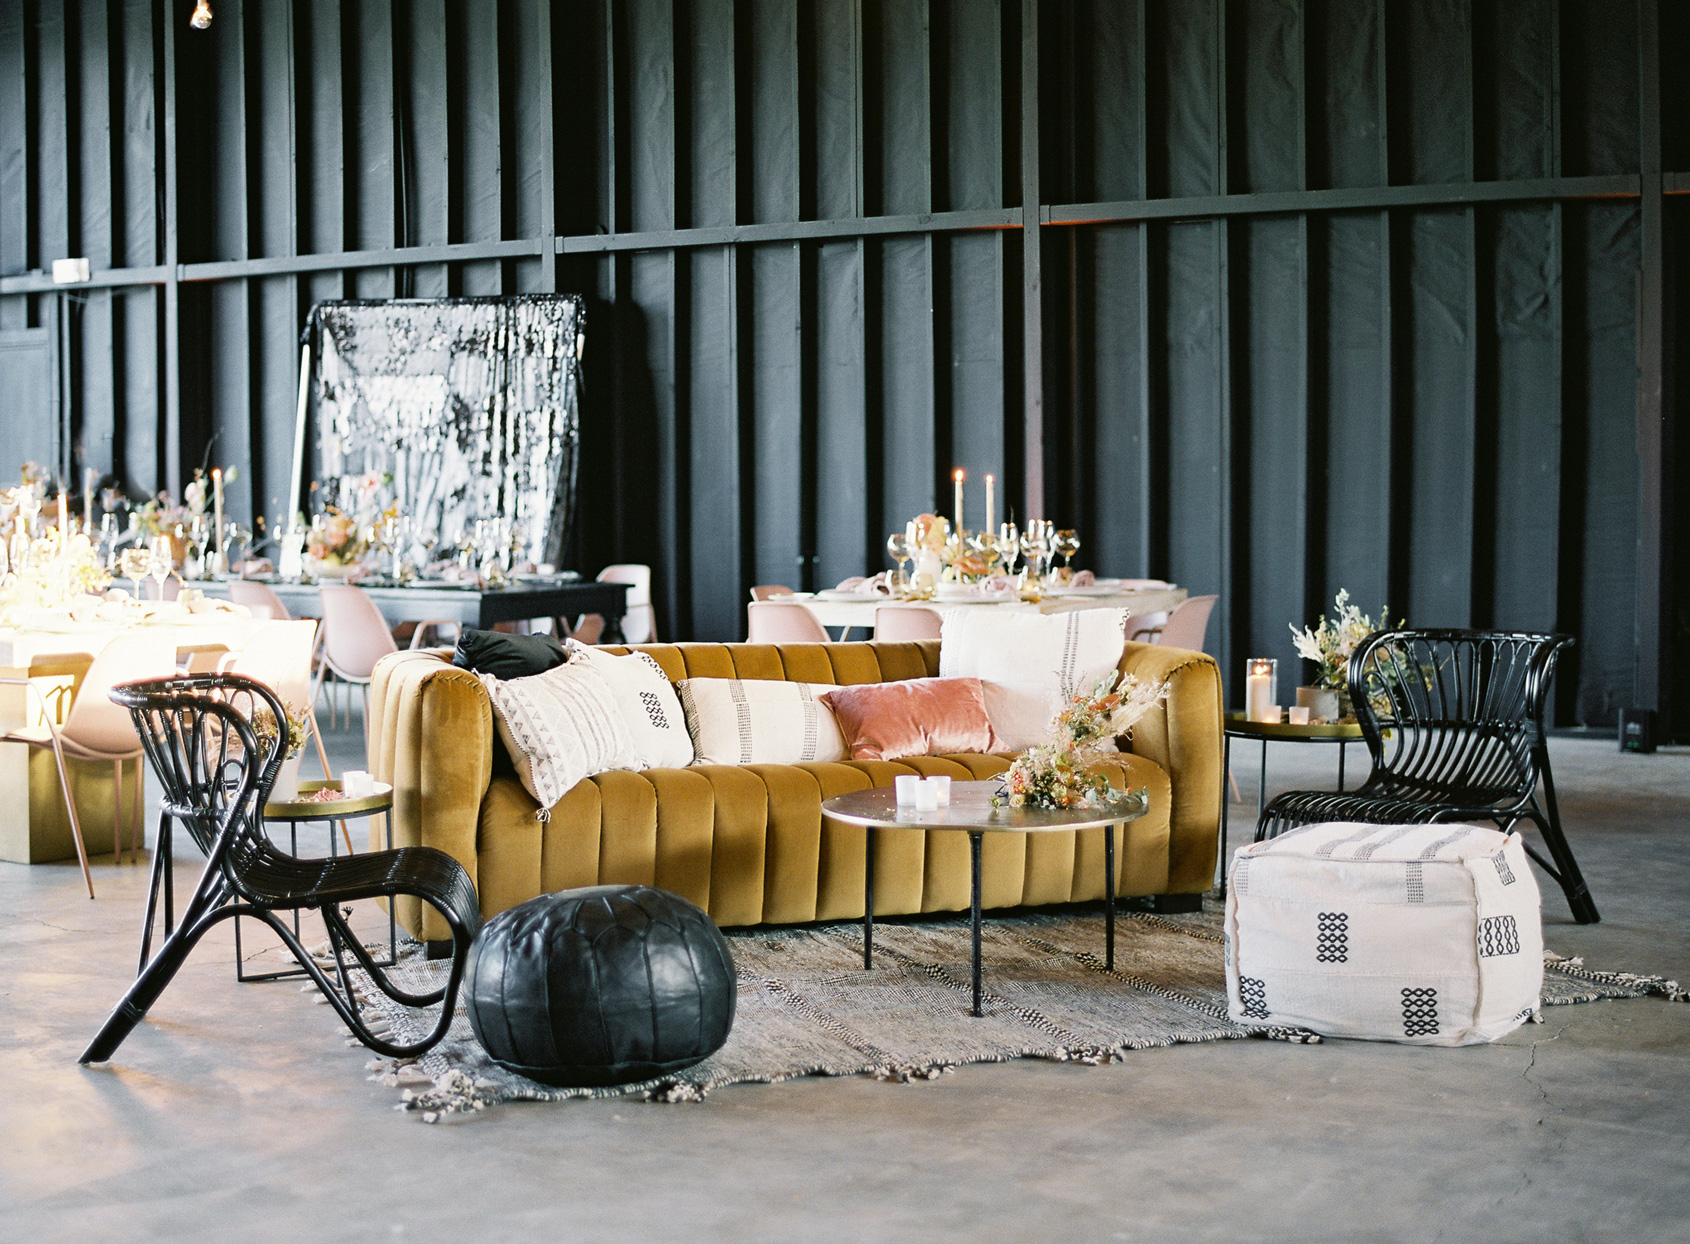 lounge space with bold colored couches and black wicker chairs